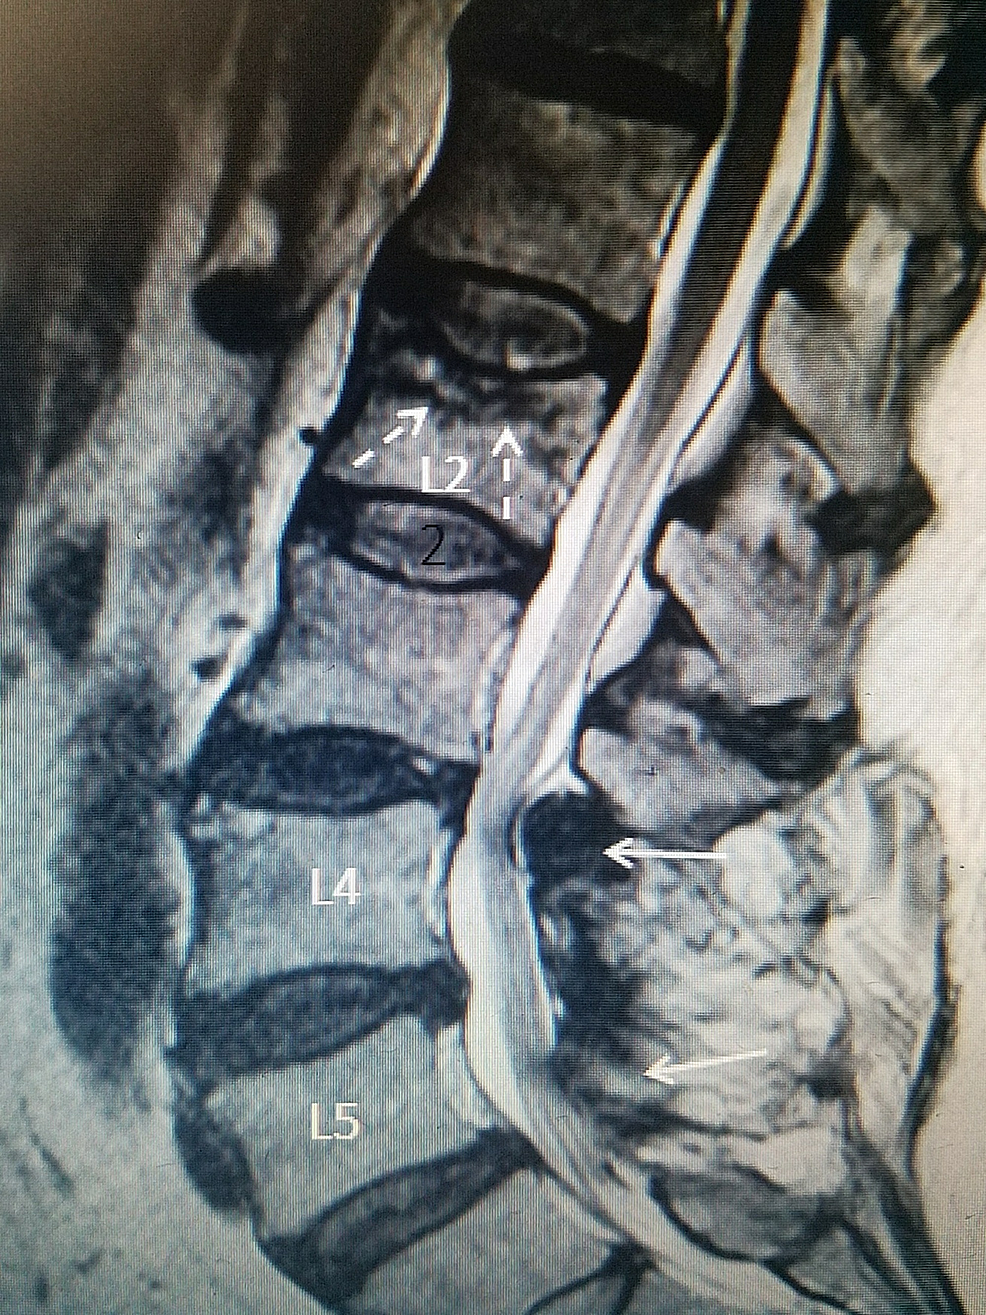 L2-fracture-15-years-after-lumbar-fusion-above-post-fusion-stenosis-after-previous-L4-to-S1-fusion